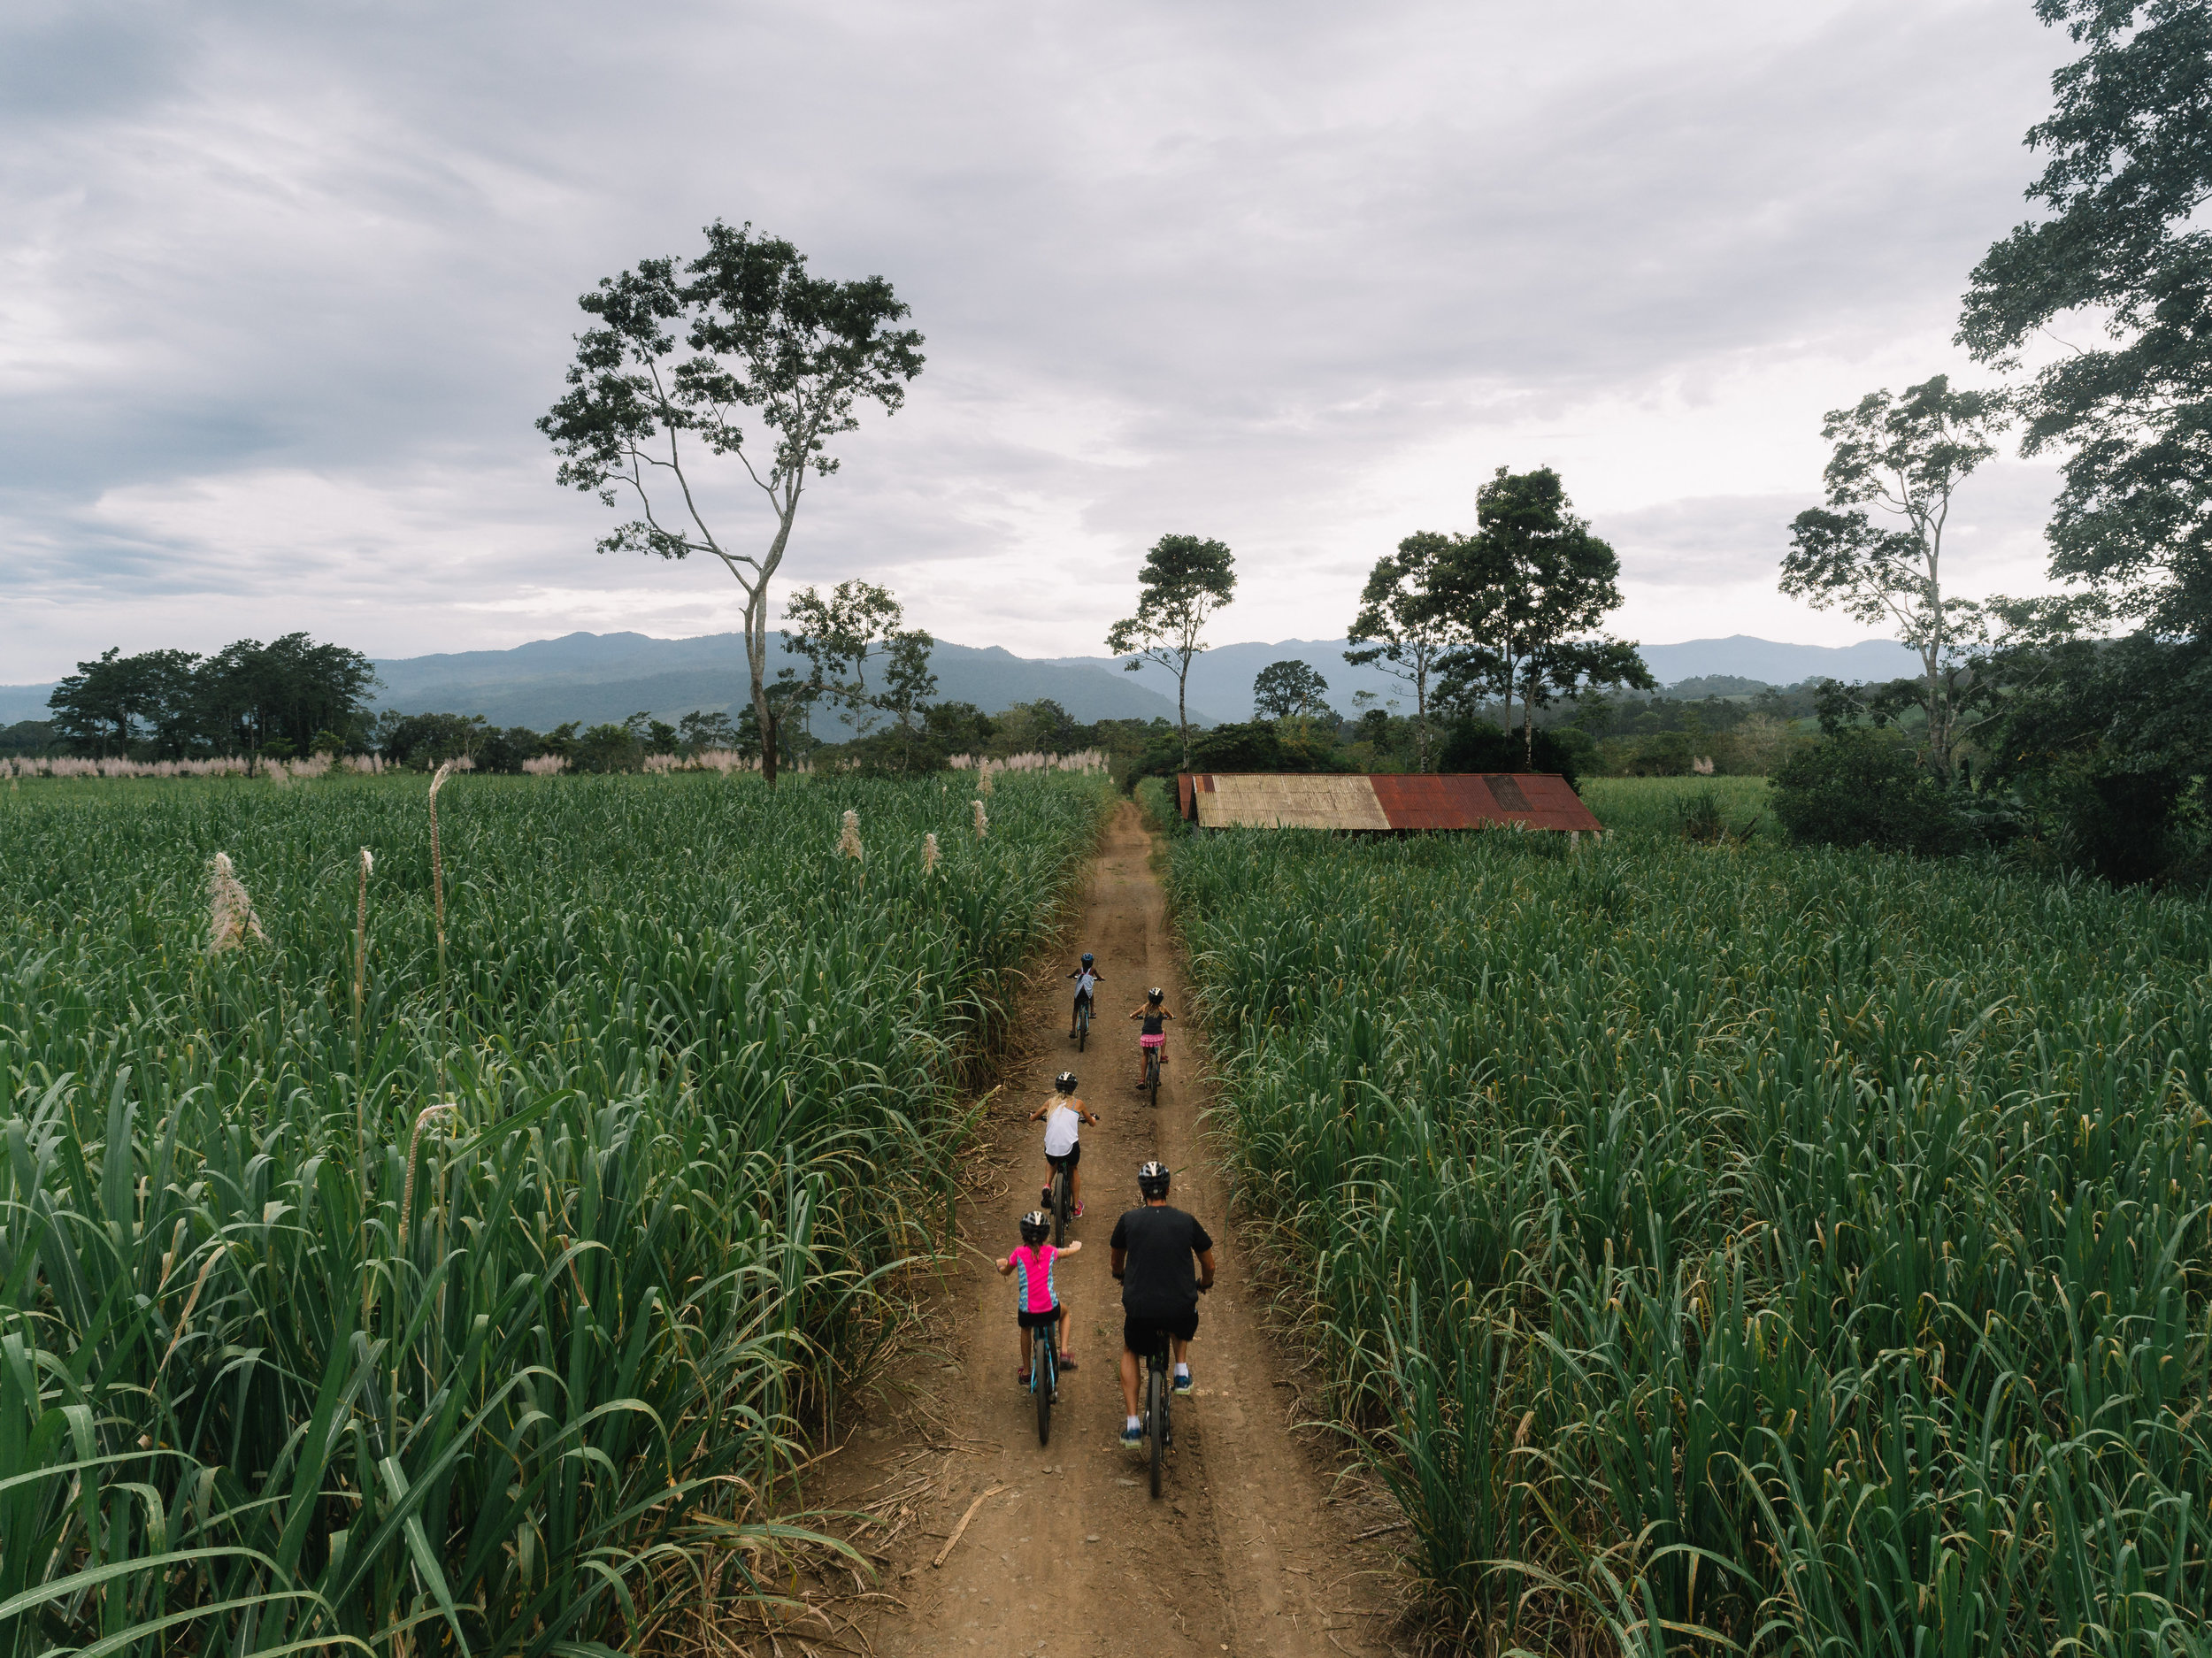 Half way thru our 8km bicycle ride in Turrialba, Costa Rica, we came across more than 50 acres of beautiful sugar cane fields. We managed to navigate our way out of this maze, just before the sun set.